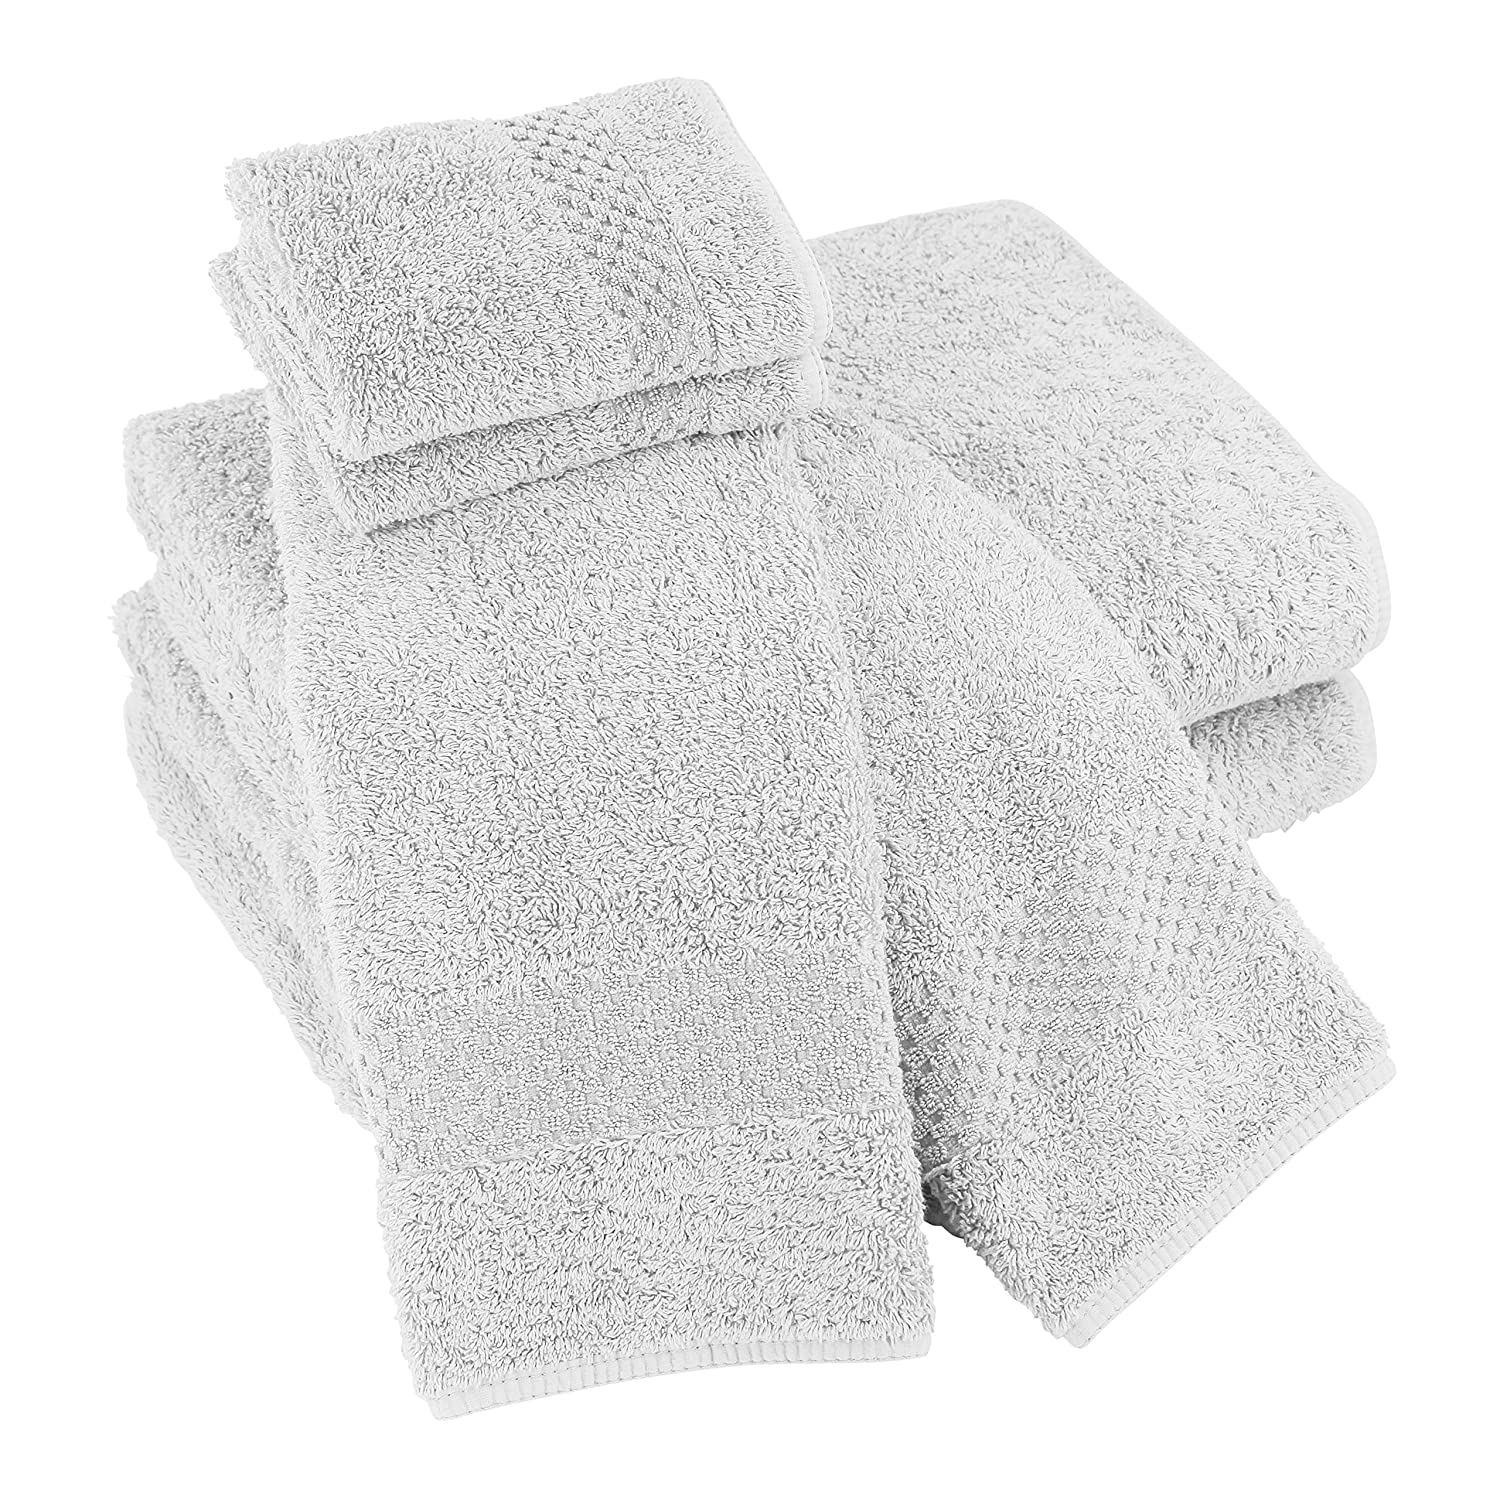 Luxor Linens Sylvano Hotel 100% Giza Combed Egyptian Cotton 700 GSM Luxury Solid 6-Piece Spa Towel Sets - Durable, Plush & Absorbent - Made in Portugal - 15 ...